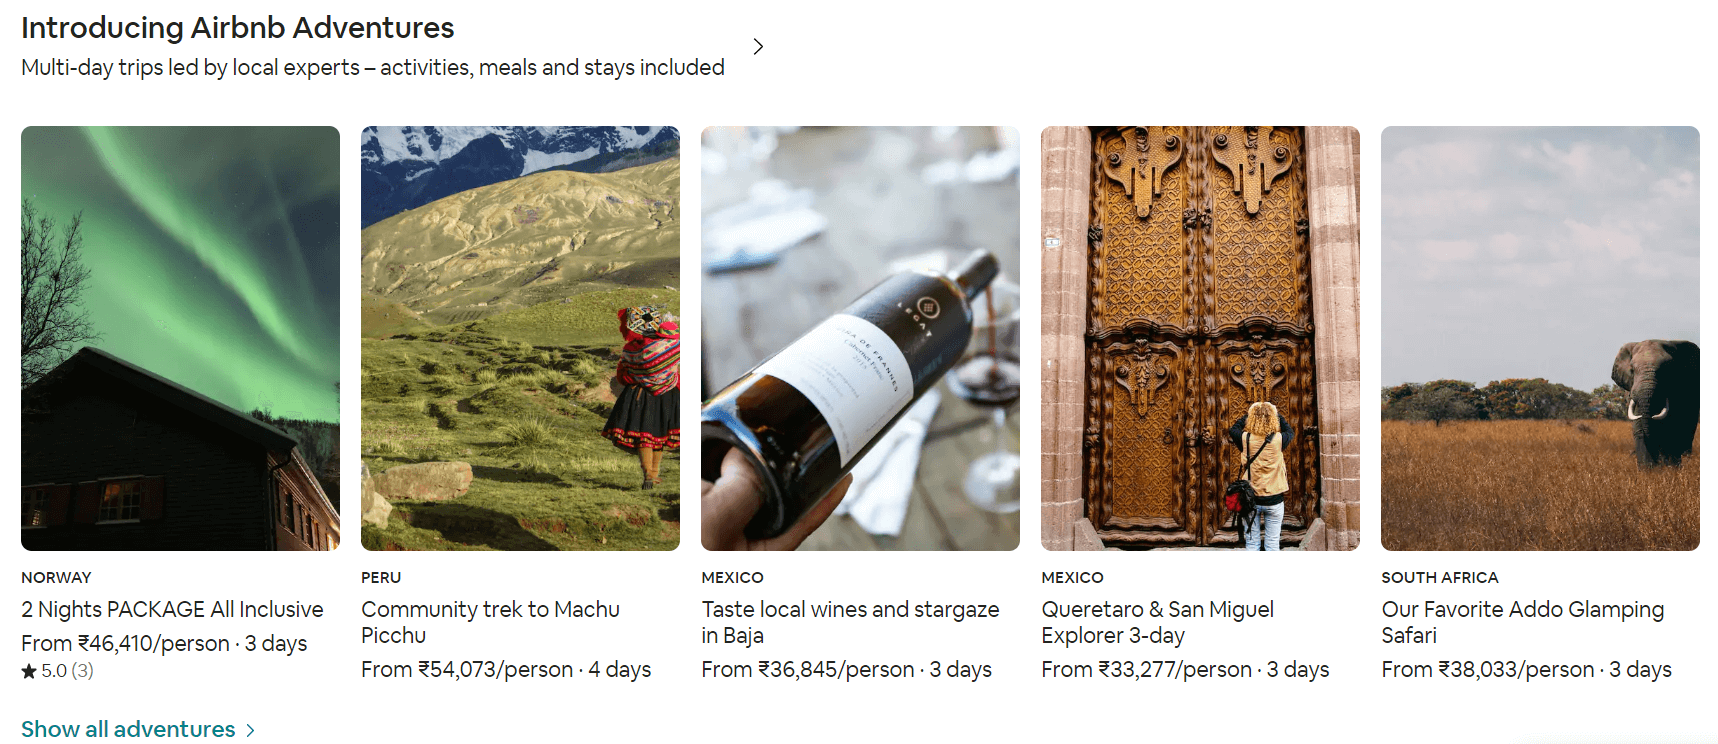 Airbnb Adventures Ecommerce Content Marketing Examples